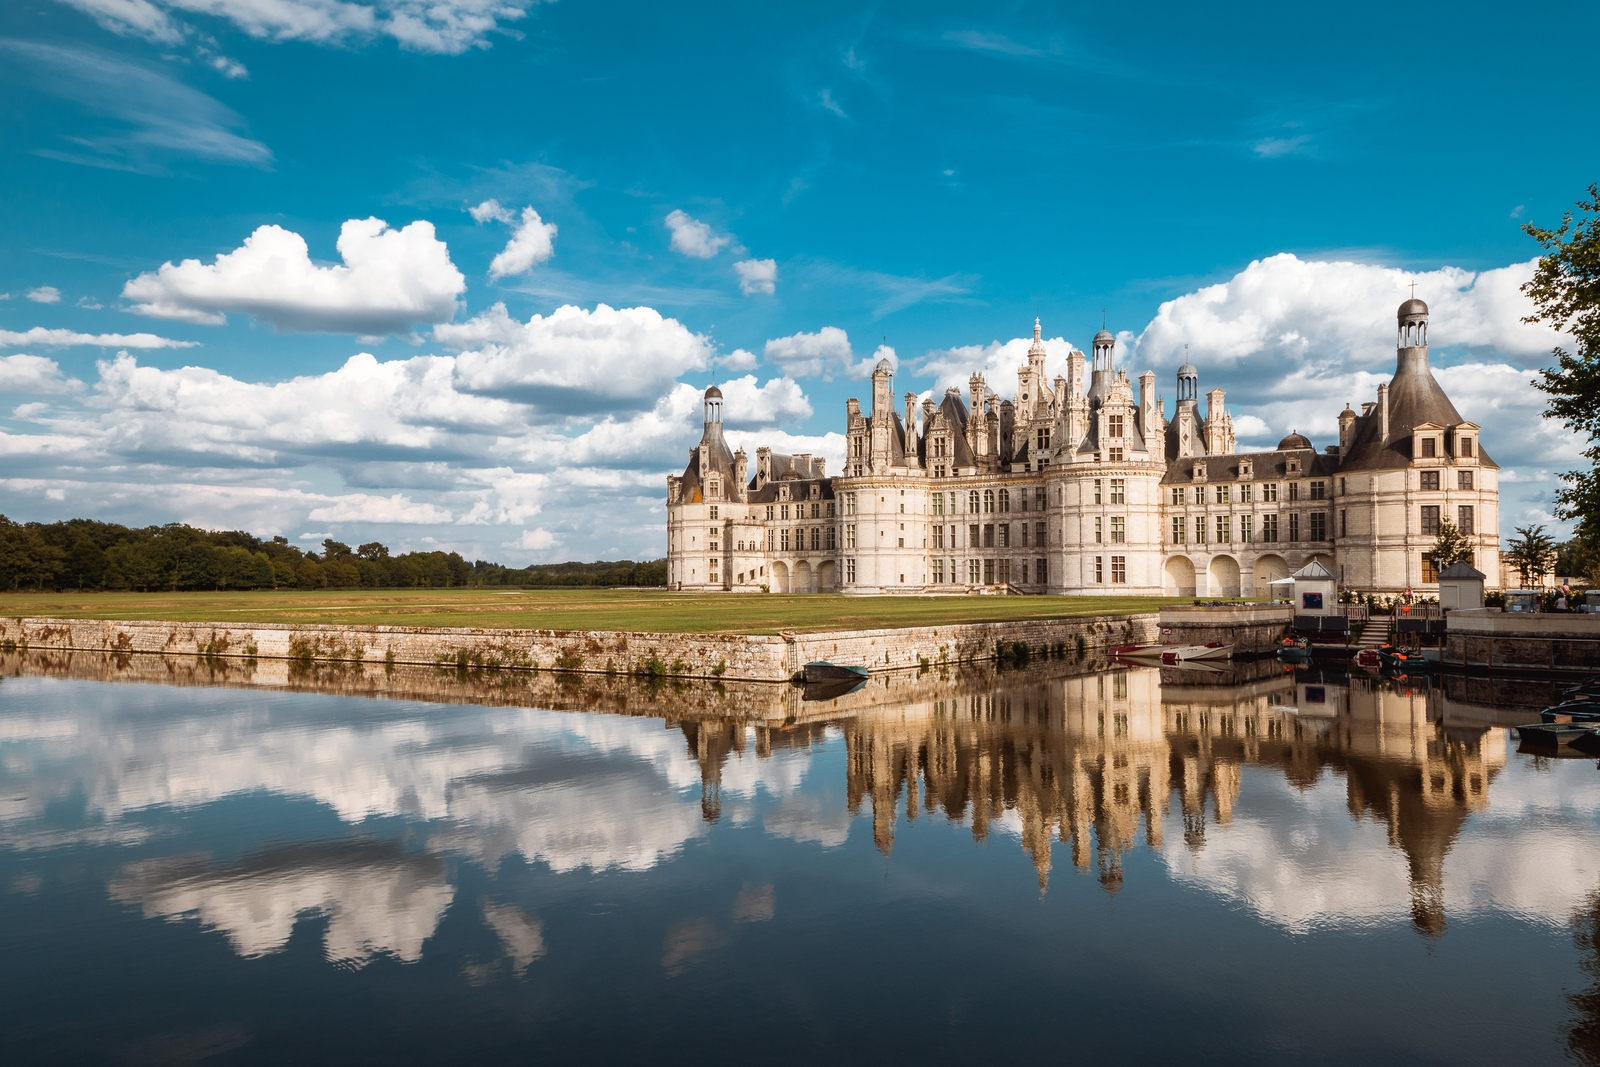 Chambord Castle © Arnaud_Scherer - licence [CC BY-SA 4.0] from Wikimedia Commons